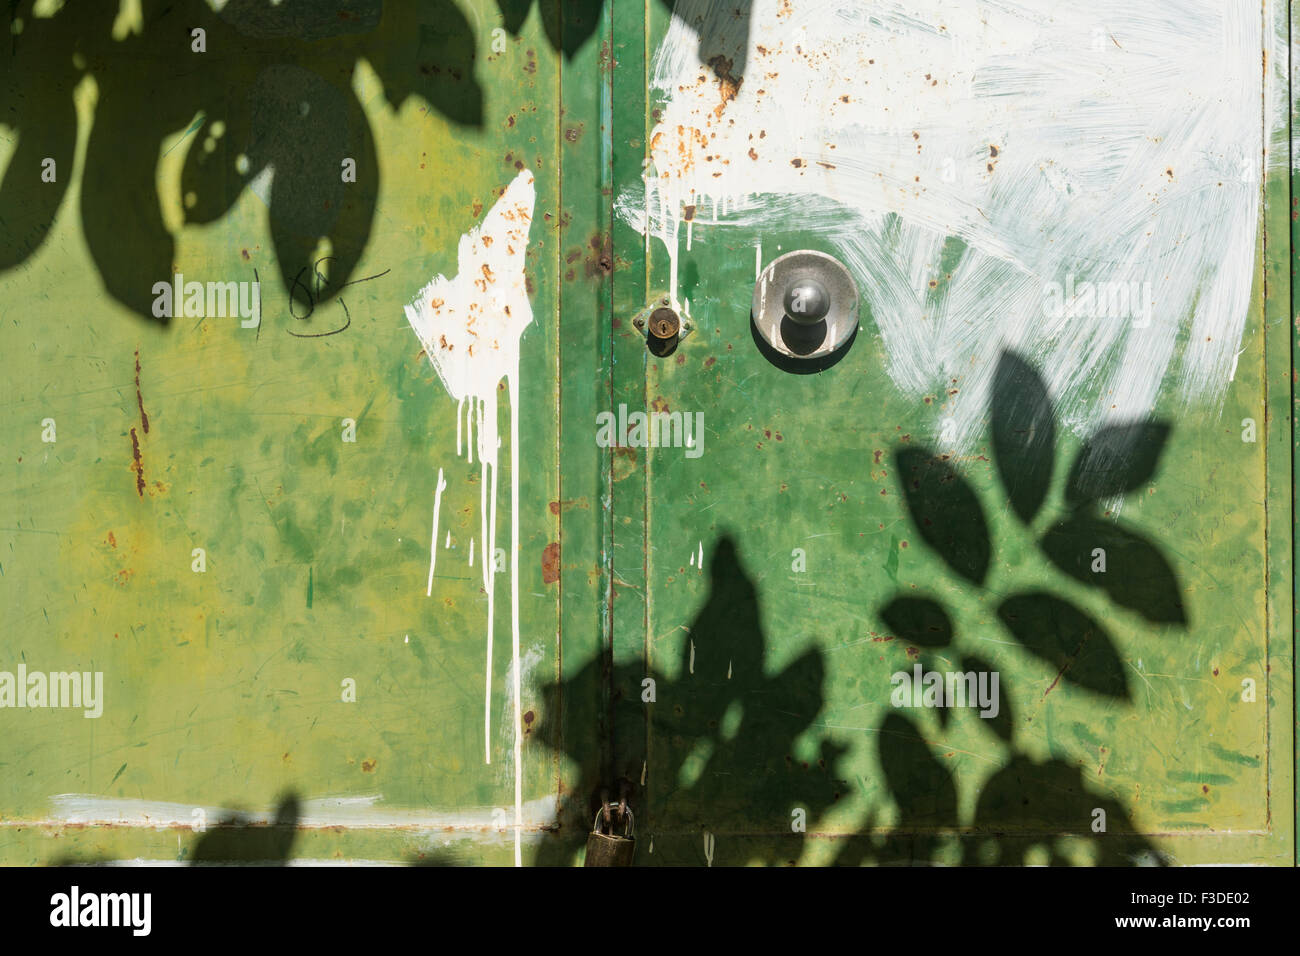 shadow of tree leaves on green house door with round knob